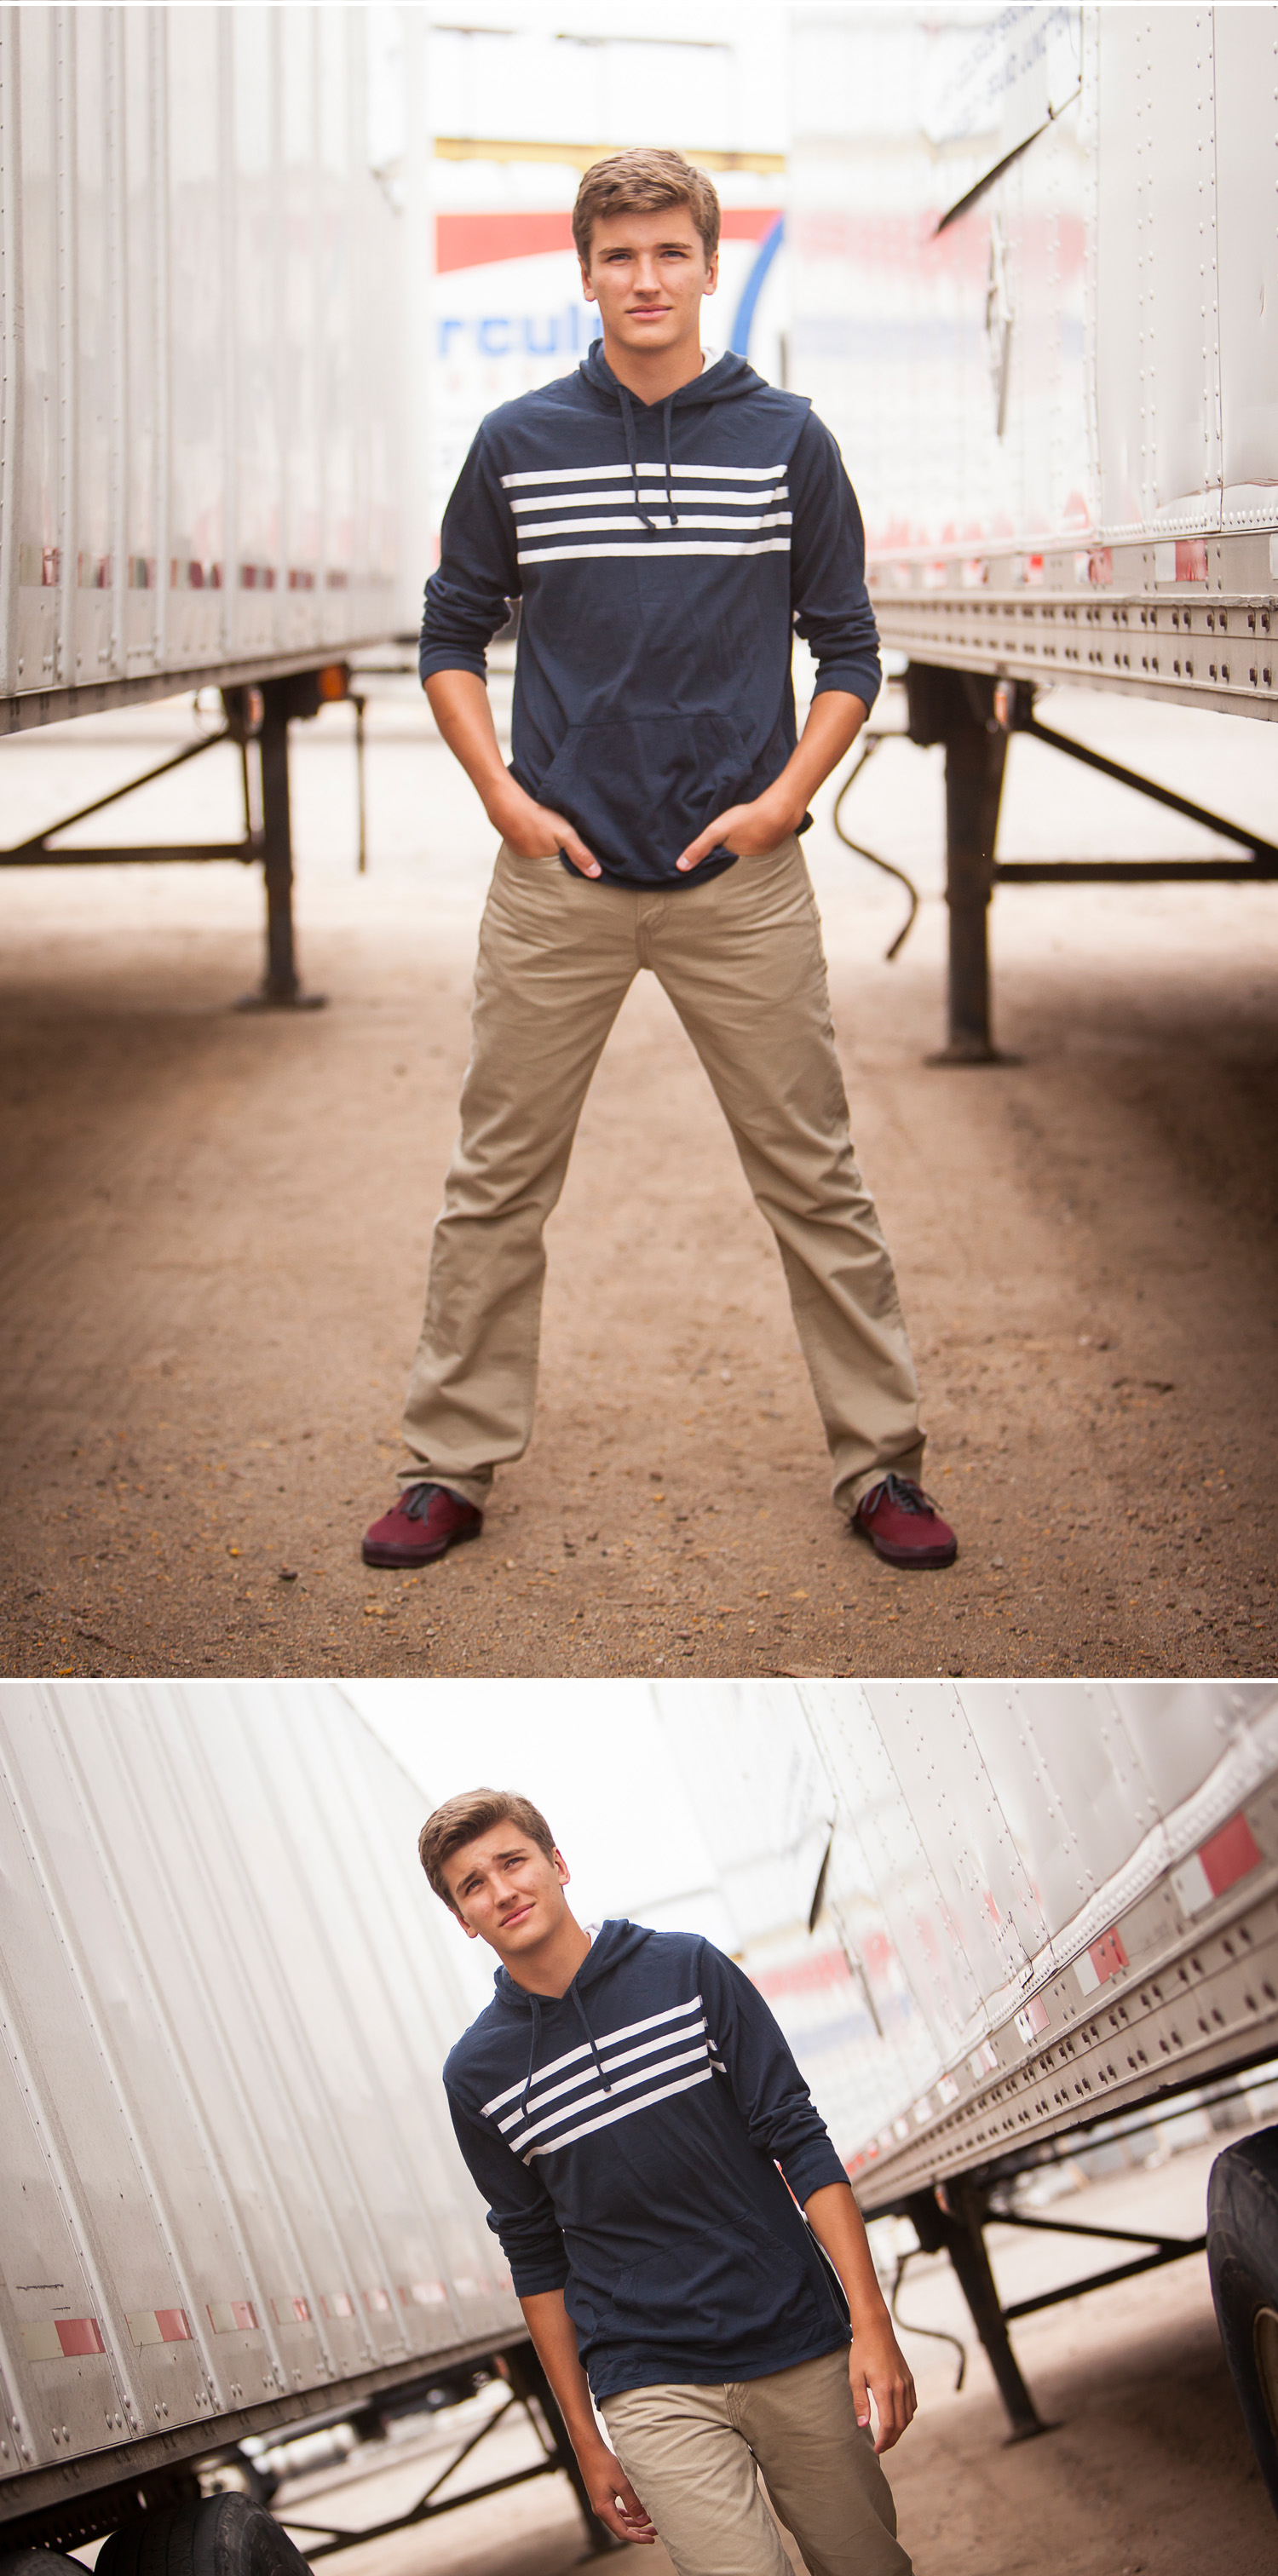 High school senior guy pictures between trucks in Denver with photographer Jennifer Koskinen | Merritt Portrait Studio